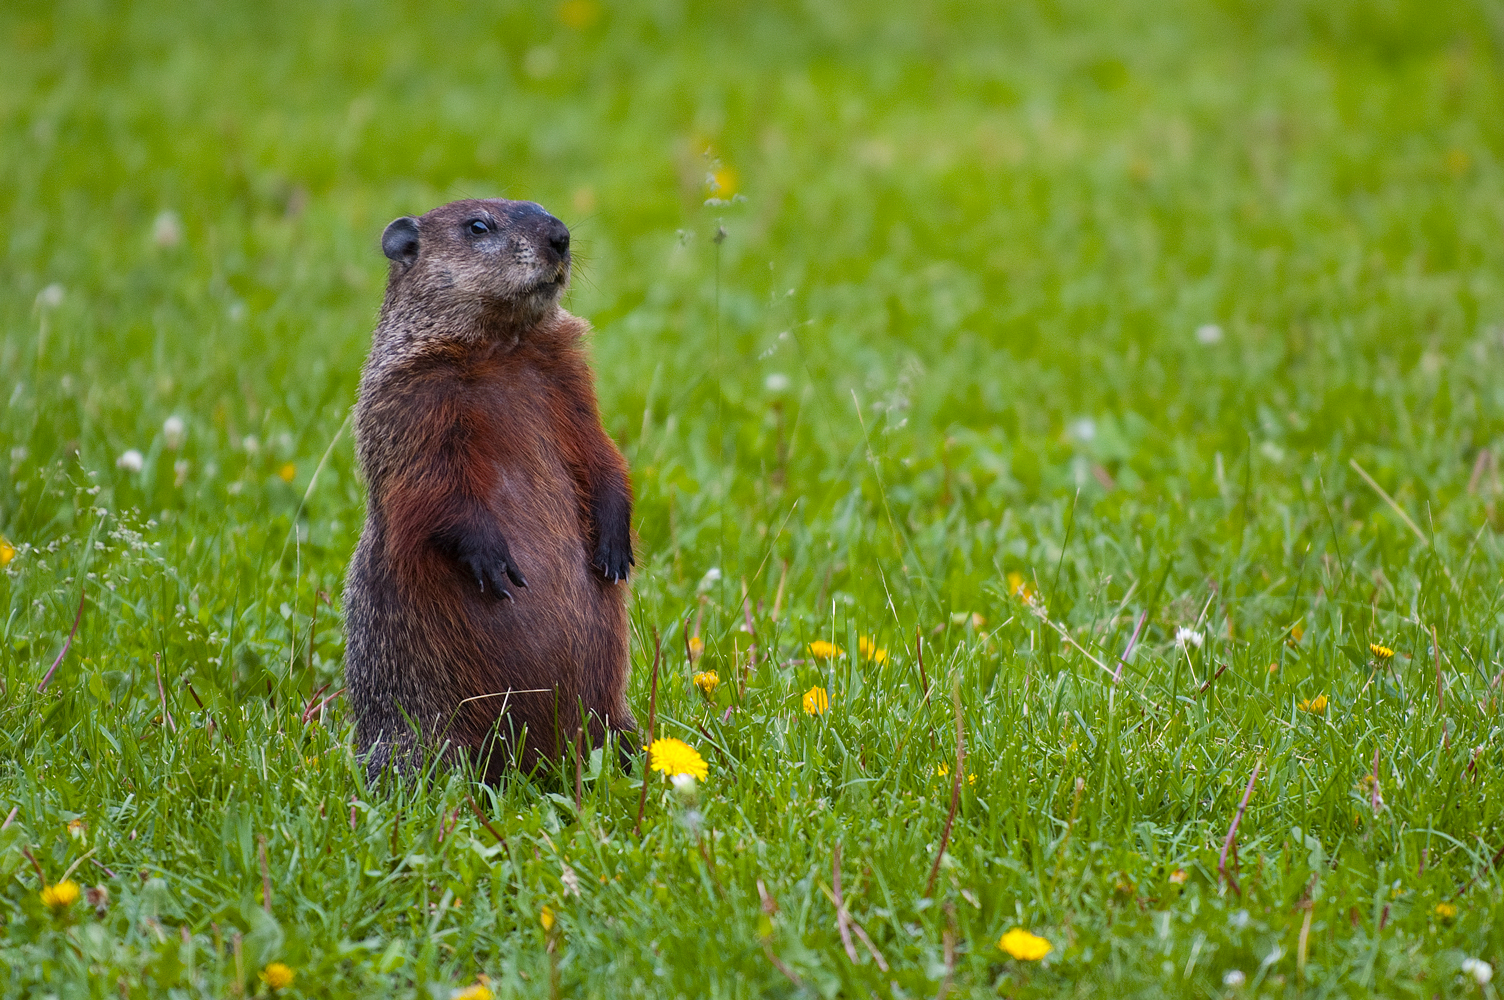 http://upload.wikimedia.org/wikipedia/commons/e/ee/Groundhog-Standing2.jpg